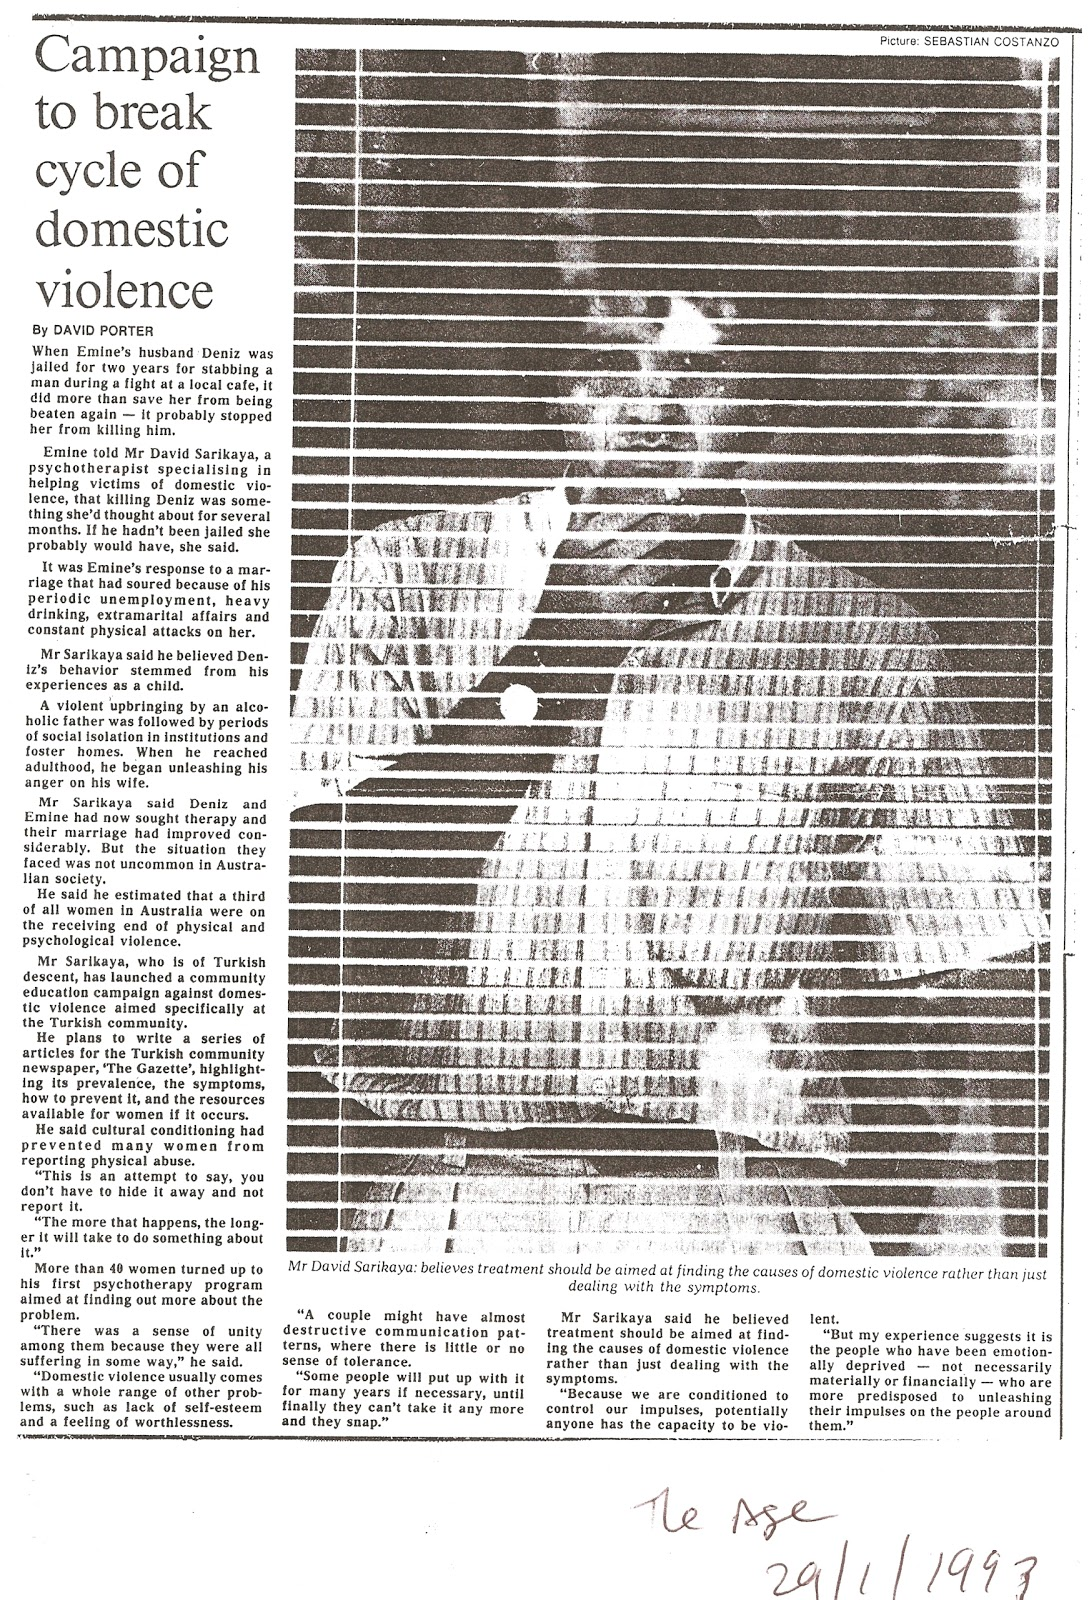 Domestic violence research articles